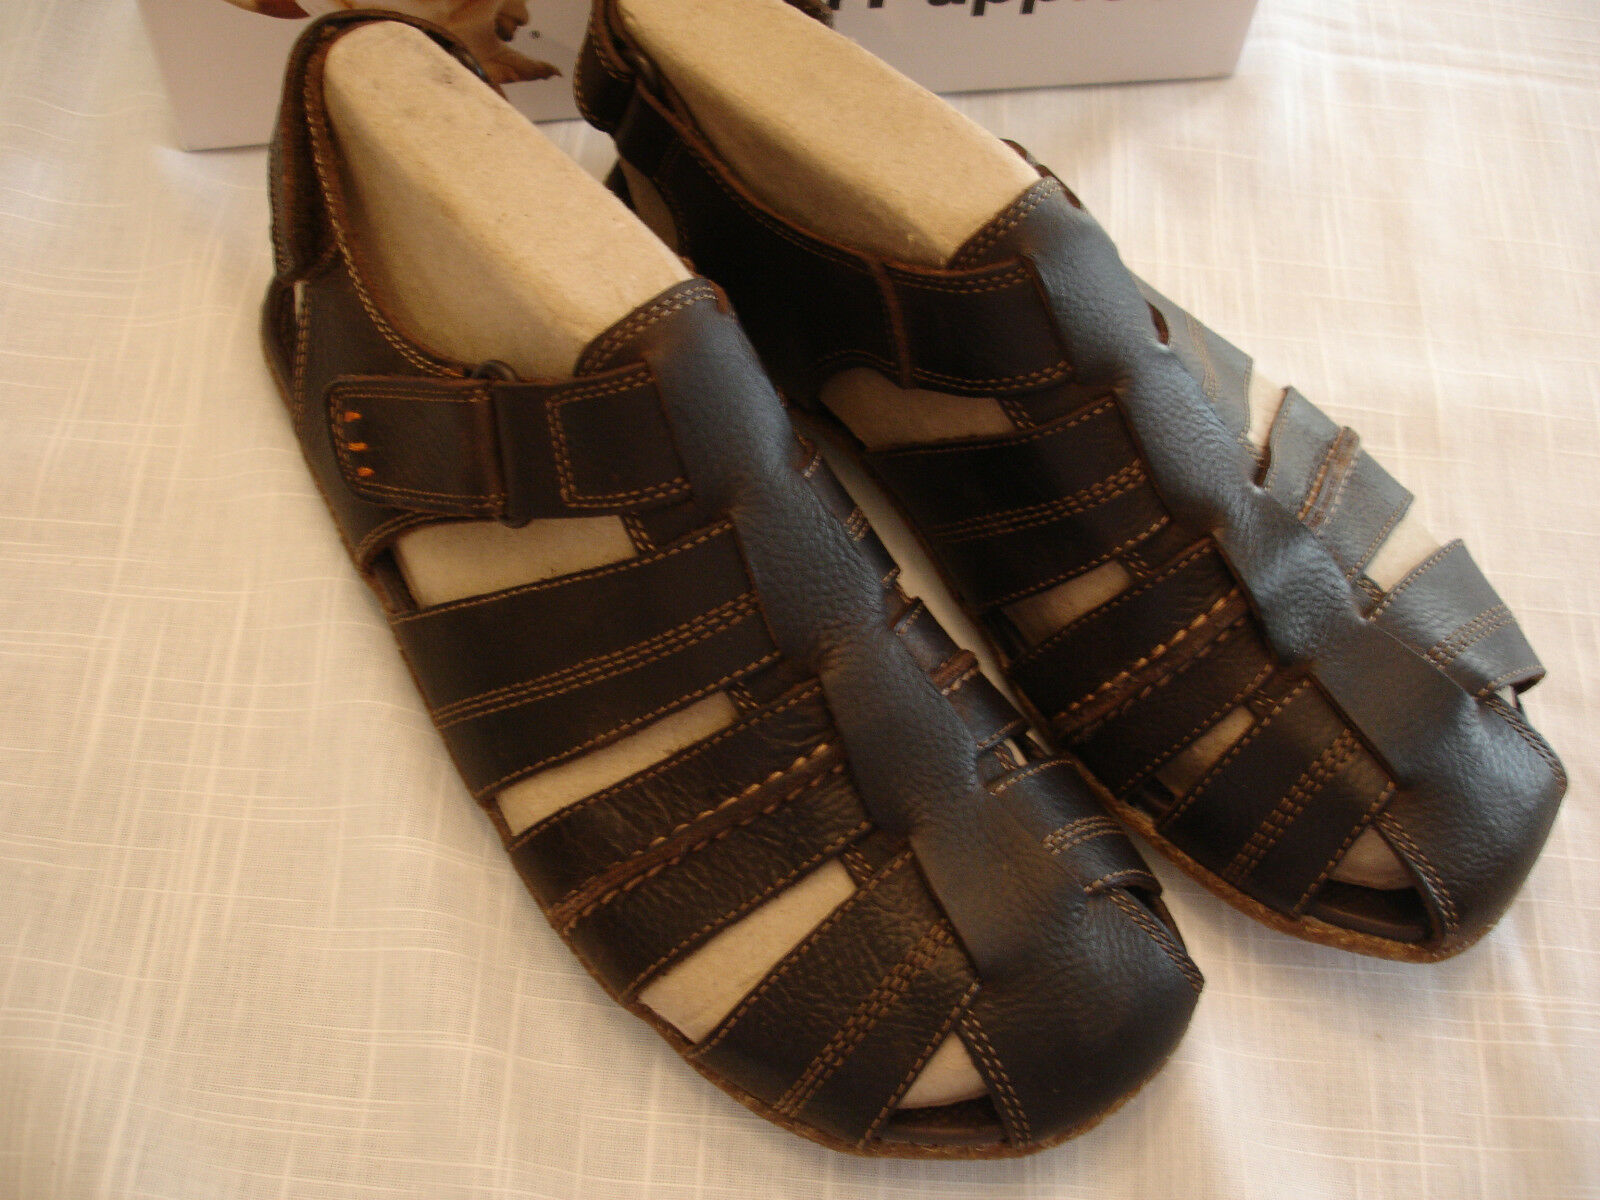 HUSH PUPPIES Brown Leather Fisherman Sandals shoes Mens Sz 10 M